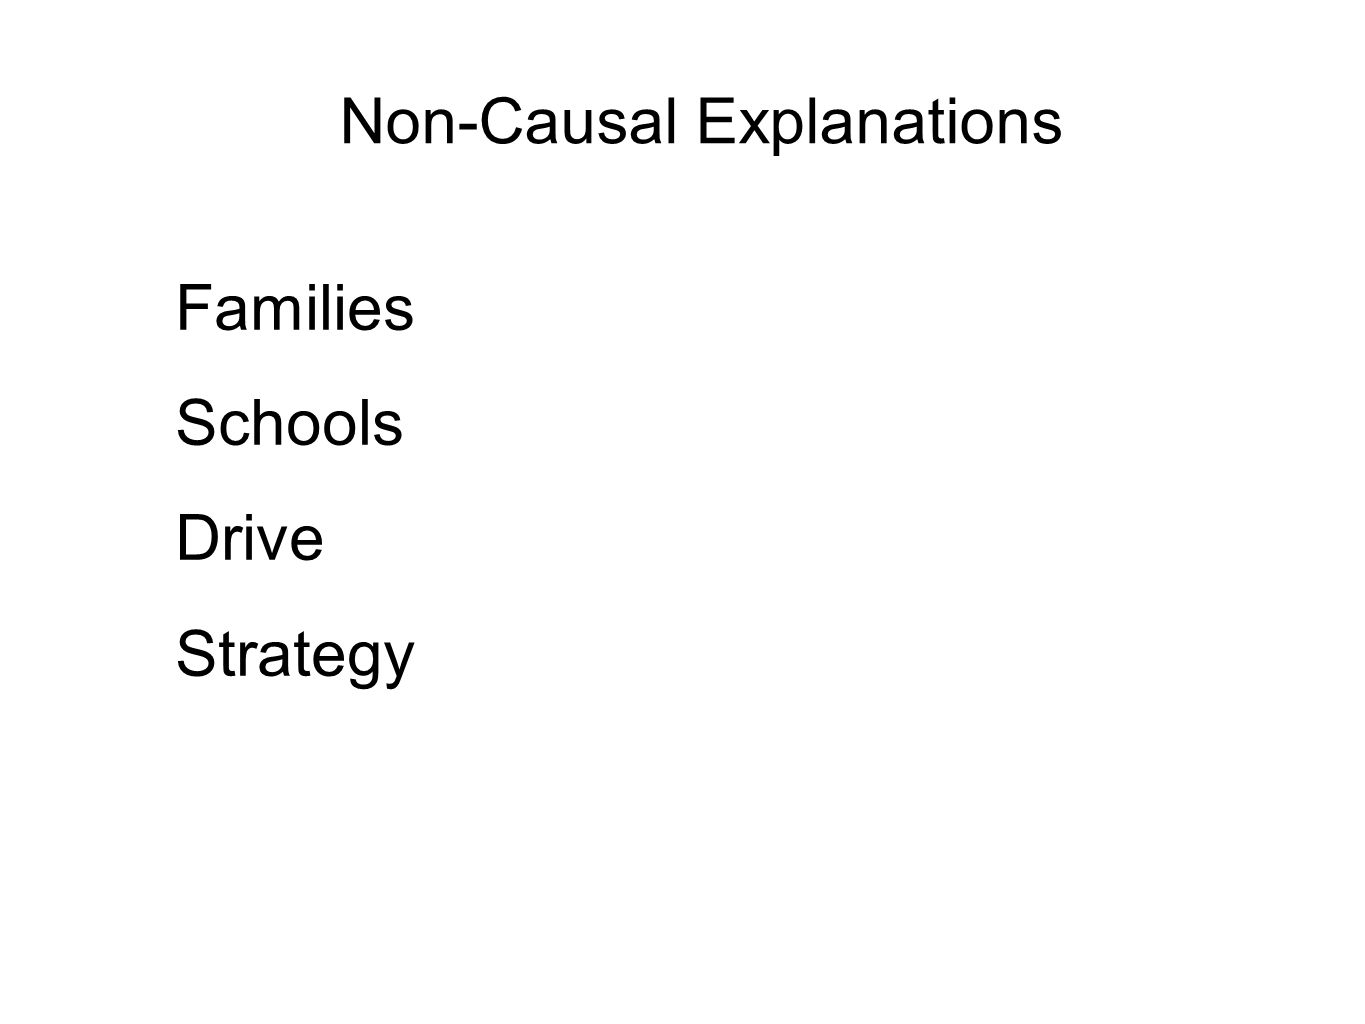 Non-Causal Explanations Families Schools Drive Strategy